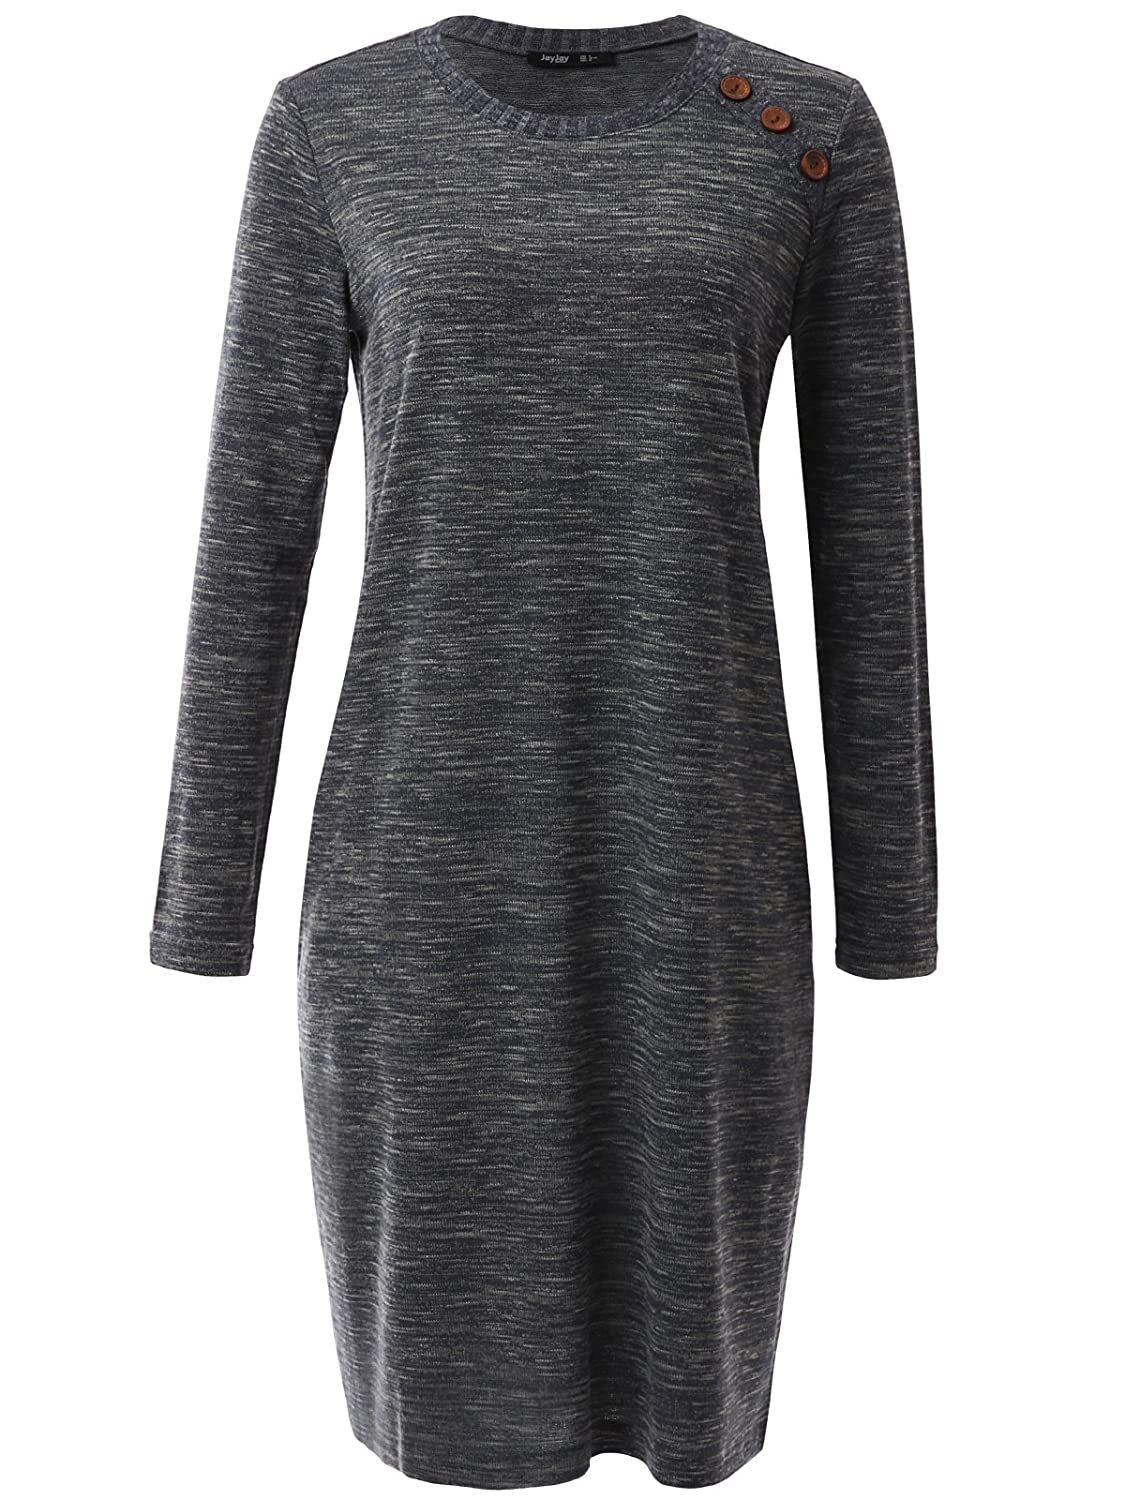 JayJay XL Company Jwdl472q9_charcoal DRESS レディース B075QYLFYF Company Jwdl472q9_charcoal XL, LEVI'S リーバイス:ee64a9f3 --- pcaautomation.com.br